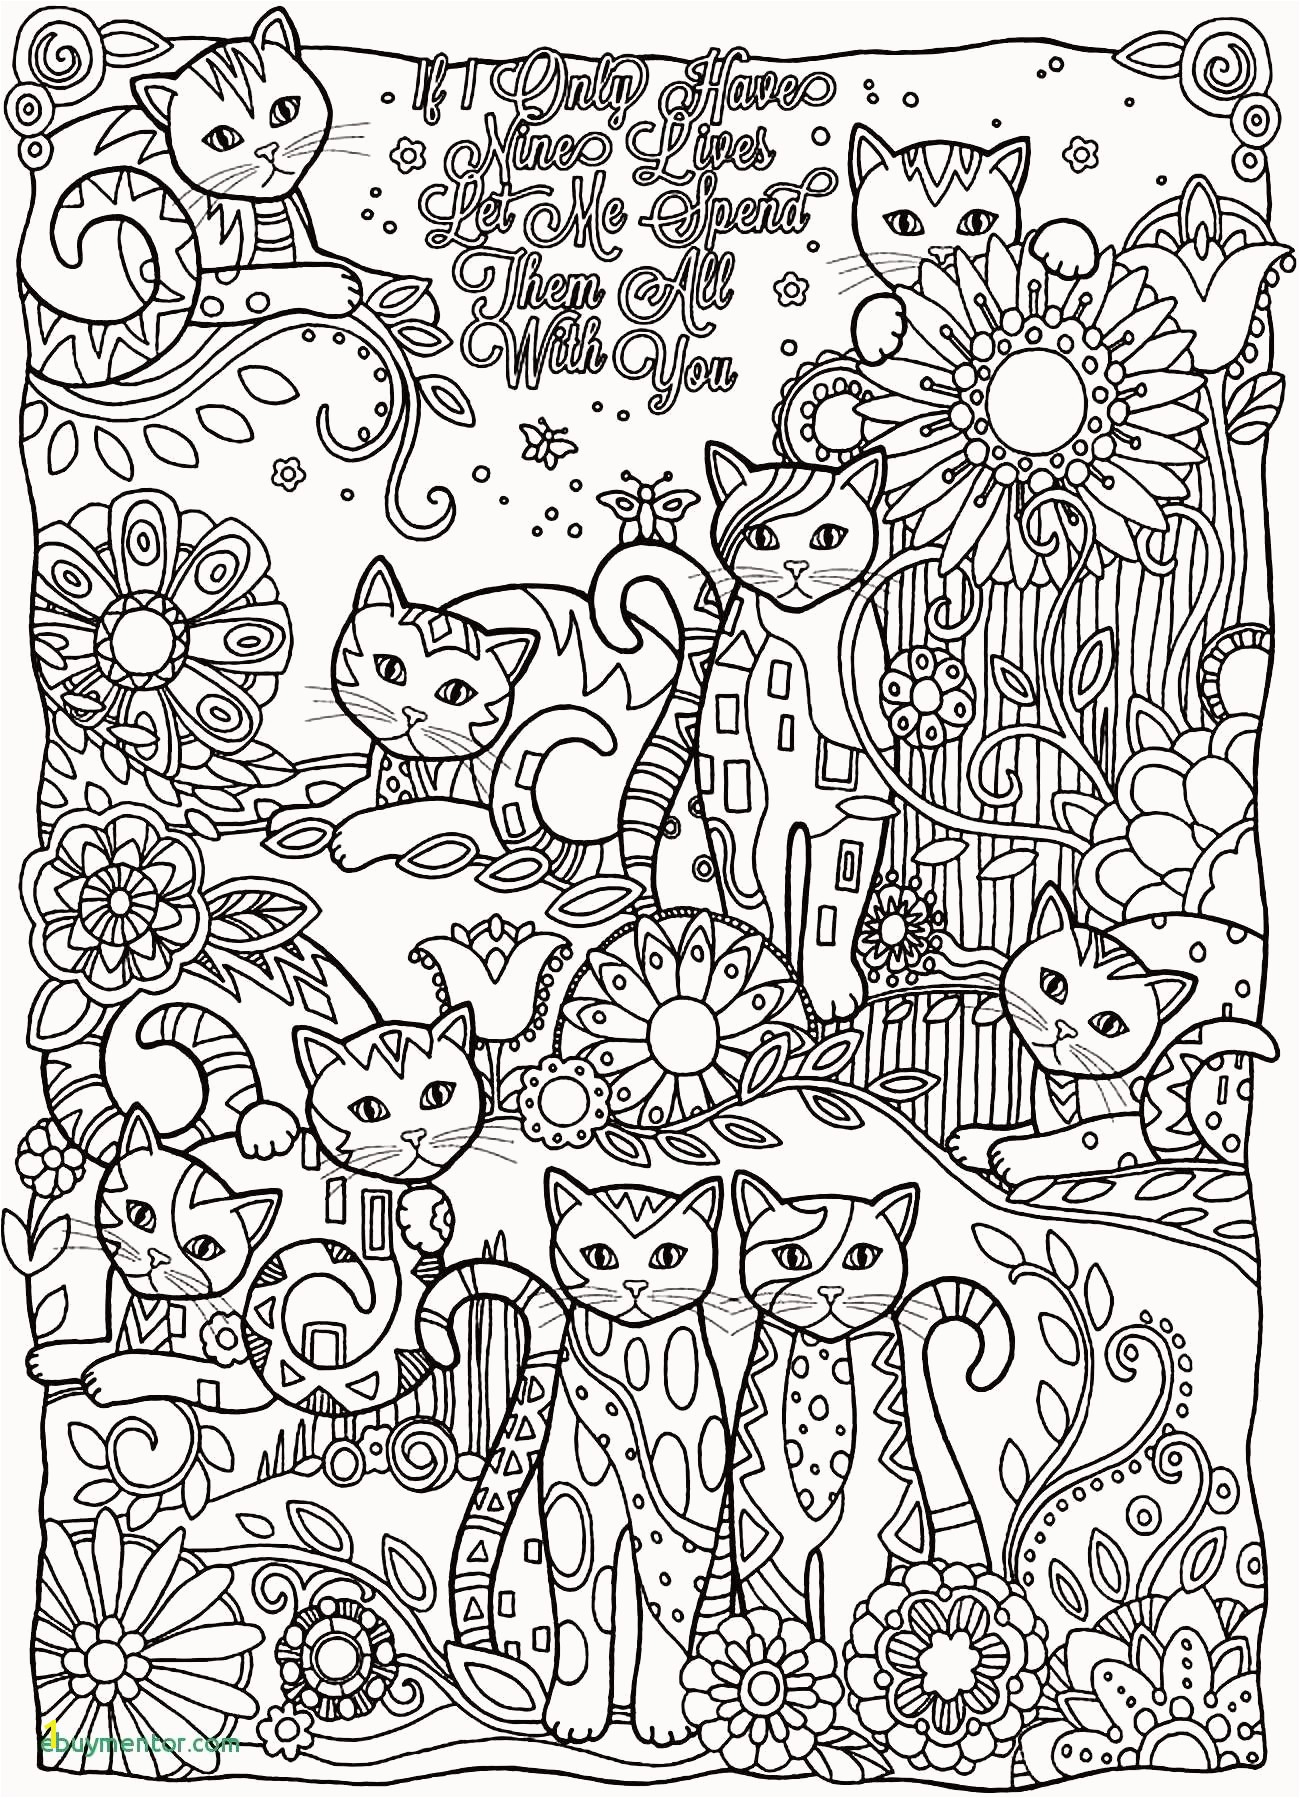 Different Shapes Coloring Pages Elegant New Colering Beautiful Coloring Papers 0d Archives Se Telefonyfo Different